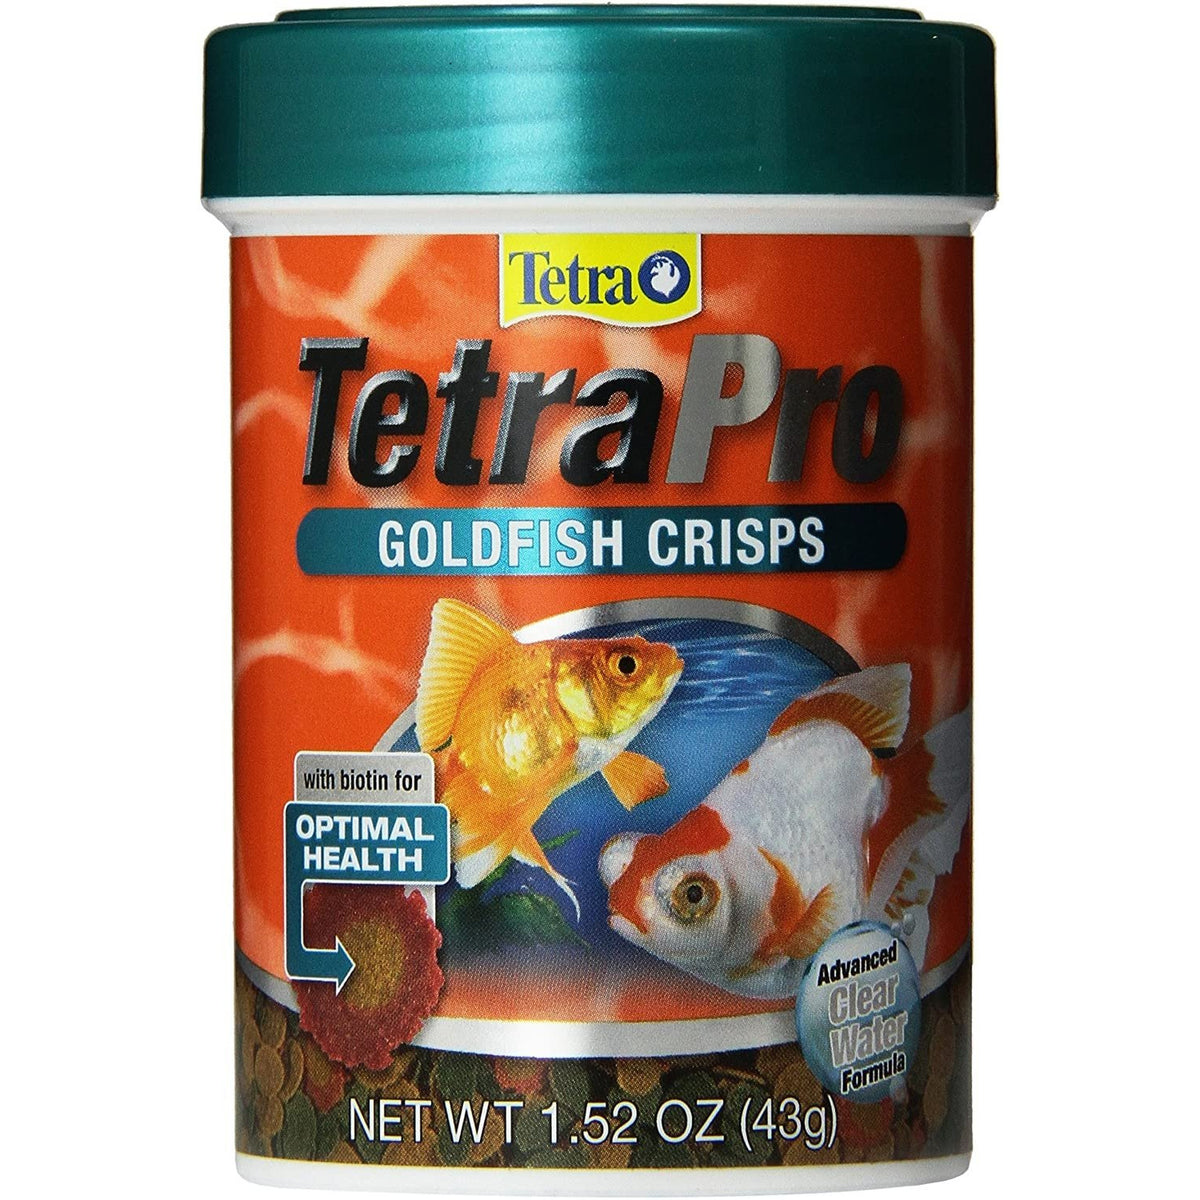 Tetra TetraPro Goldfish Crisps Fish Food (43g)